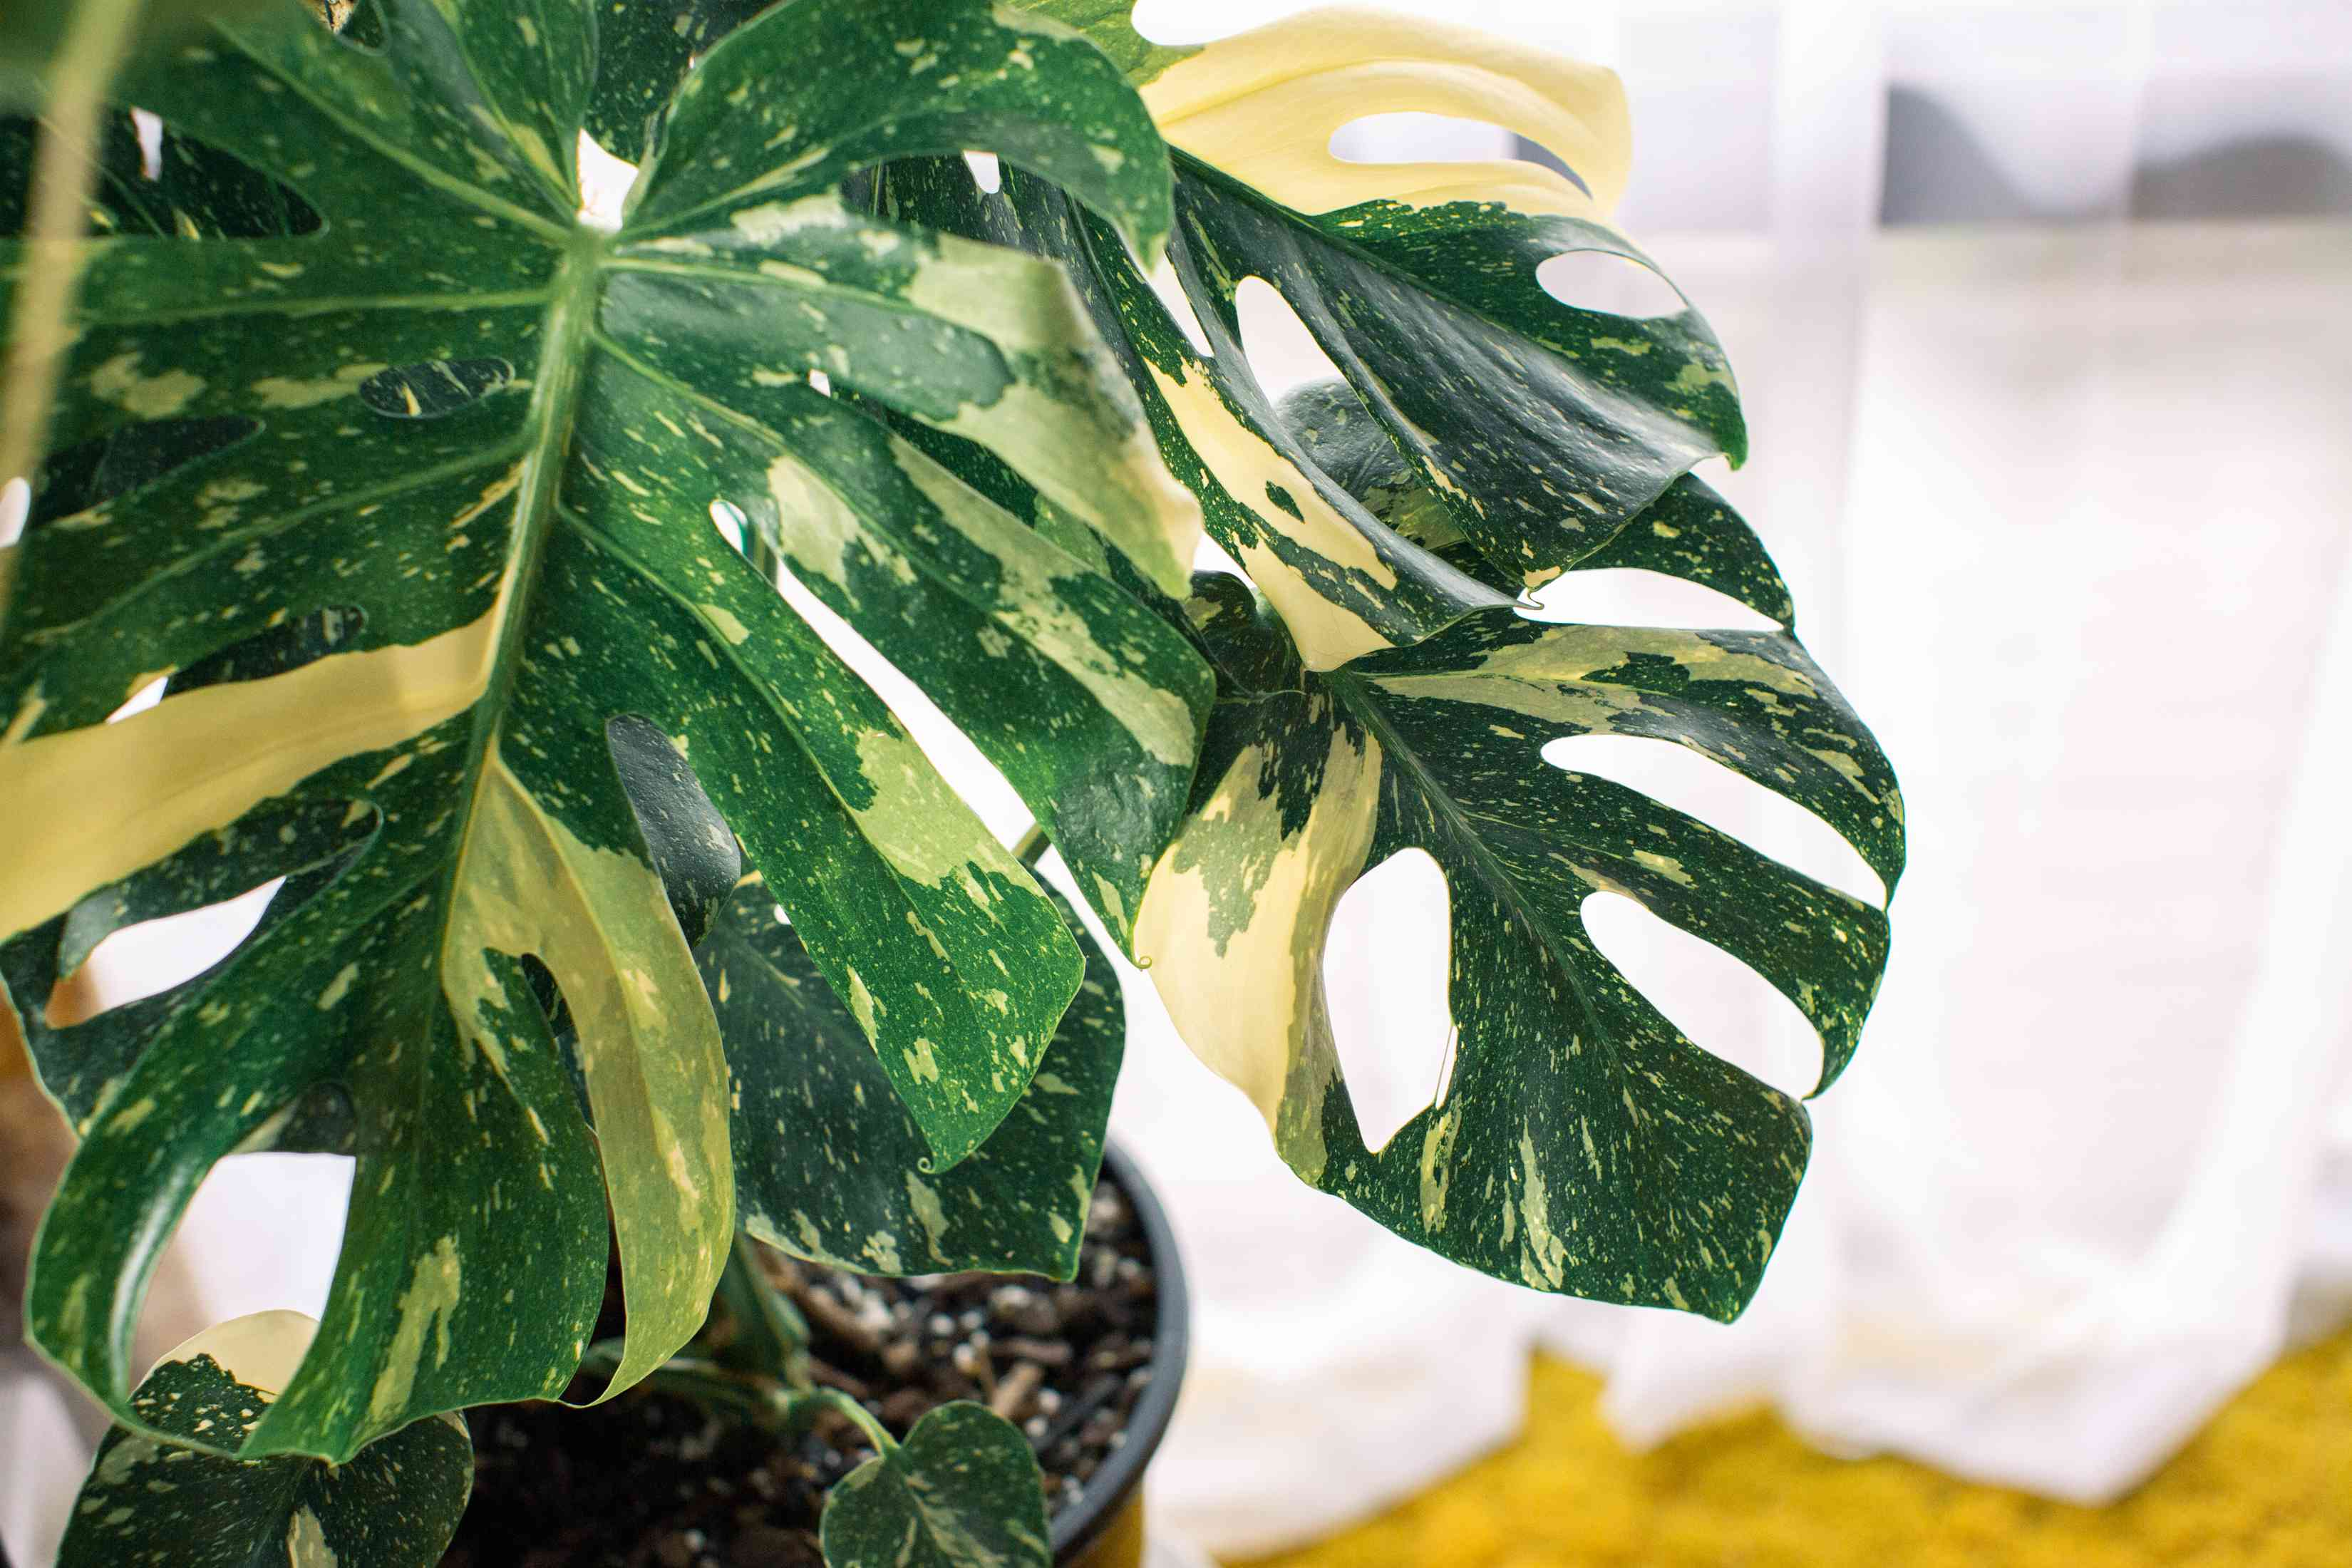 Monstera deliciosa 'Variegata' plant with white and green splotches on leaves with cutouts closeup